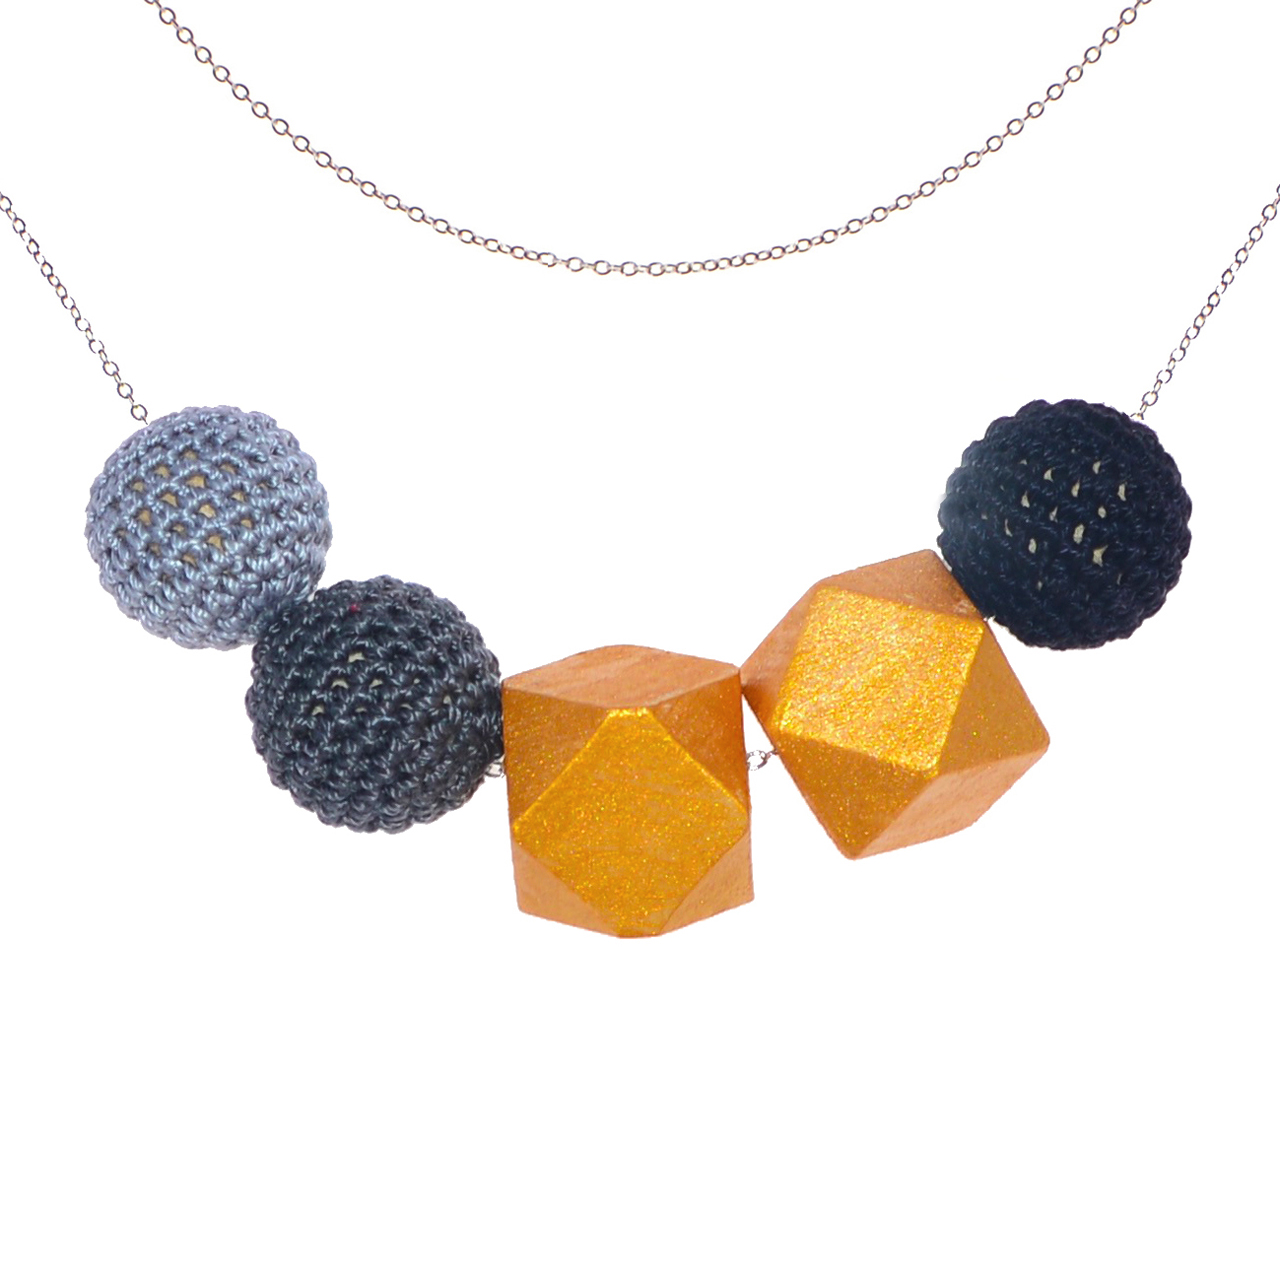 Mon Bijou - Necklace Night Out 5 | The Design Gift Shop